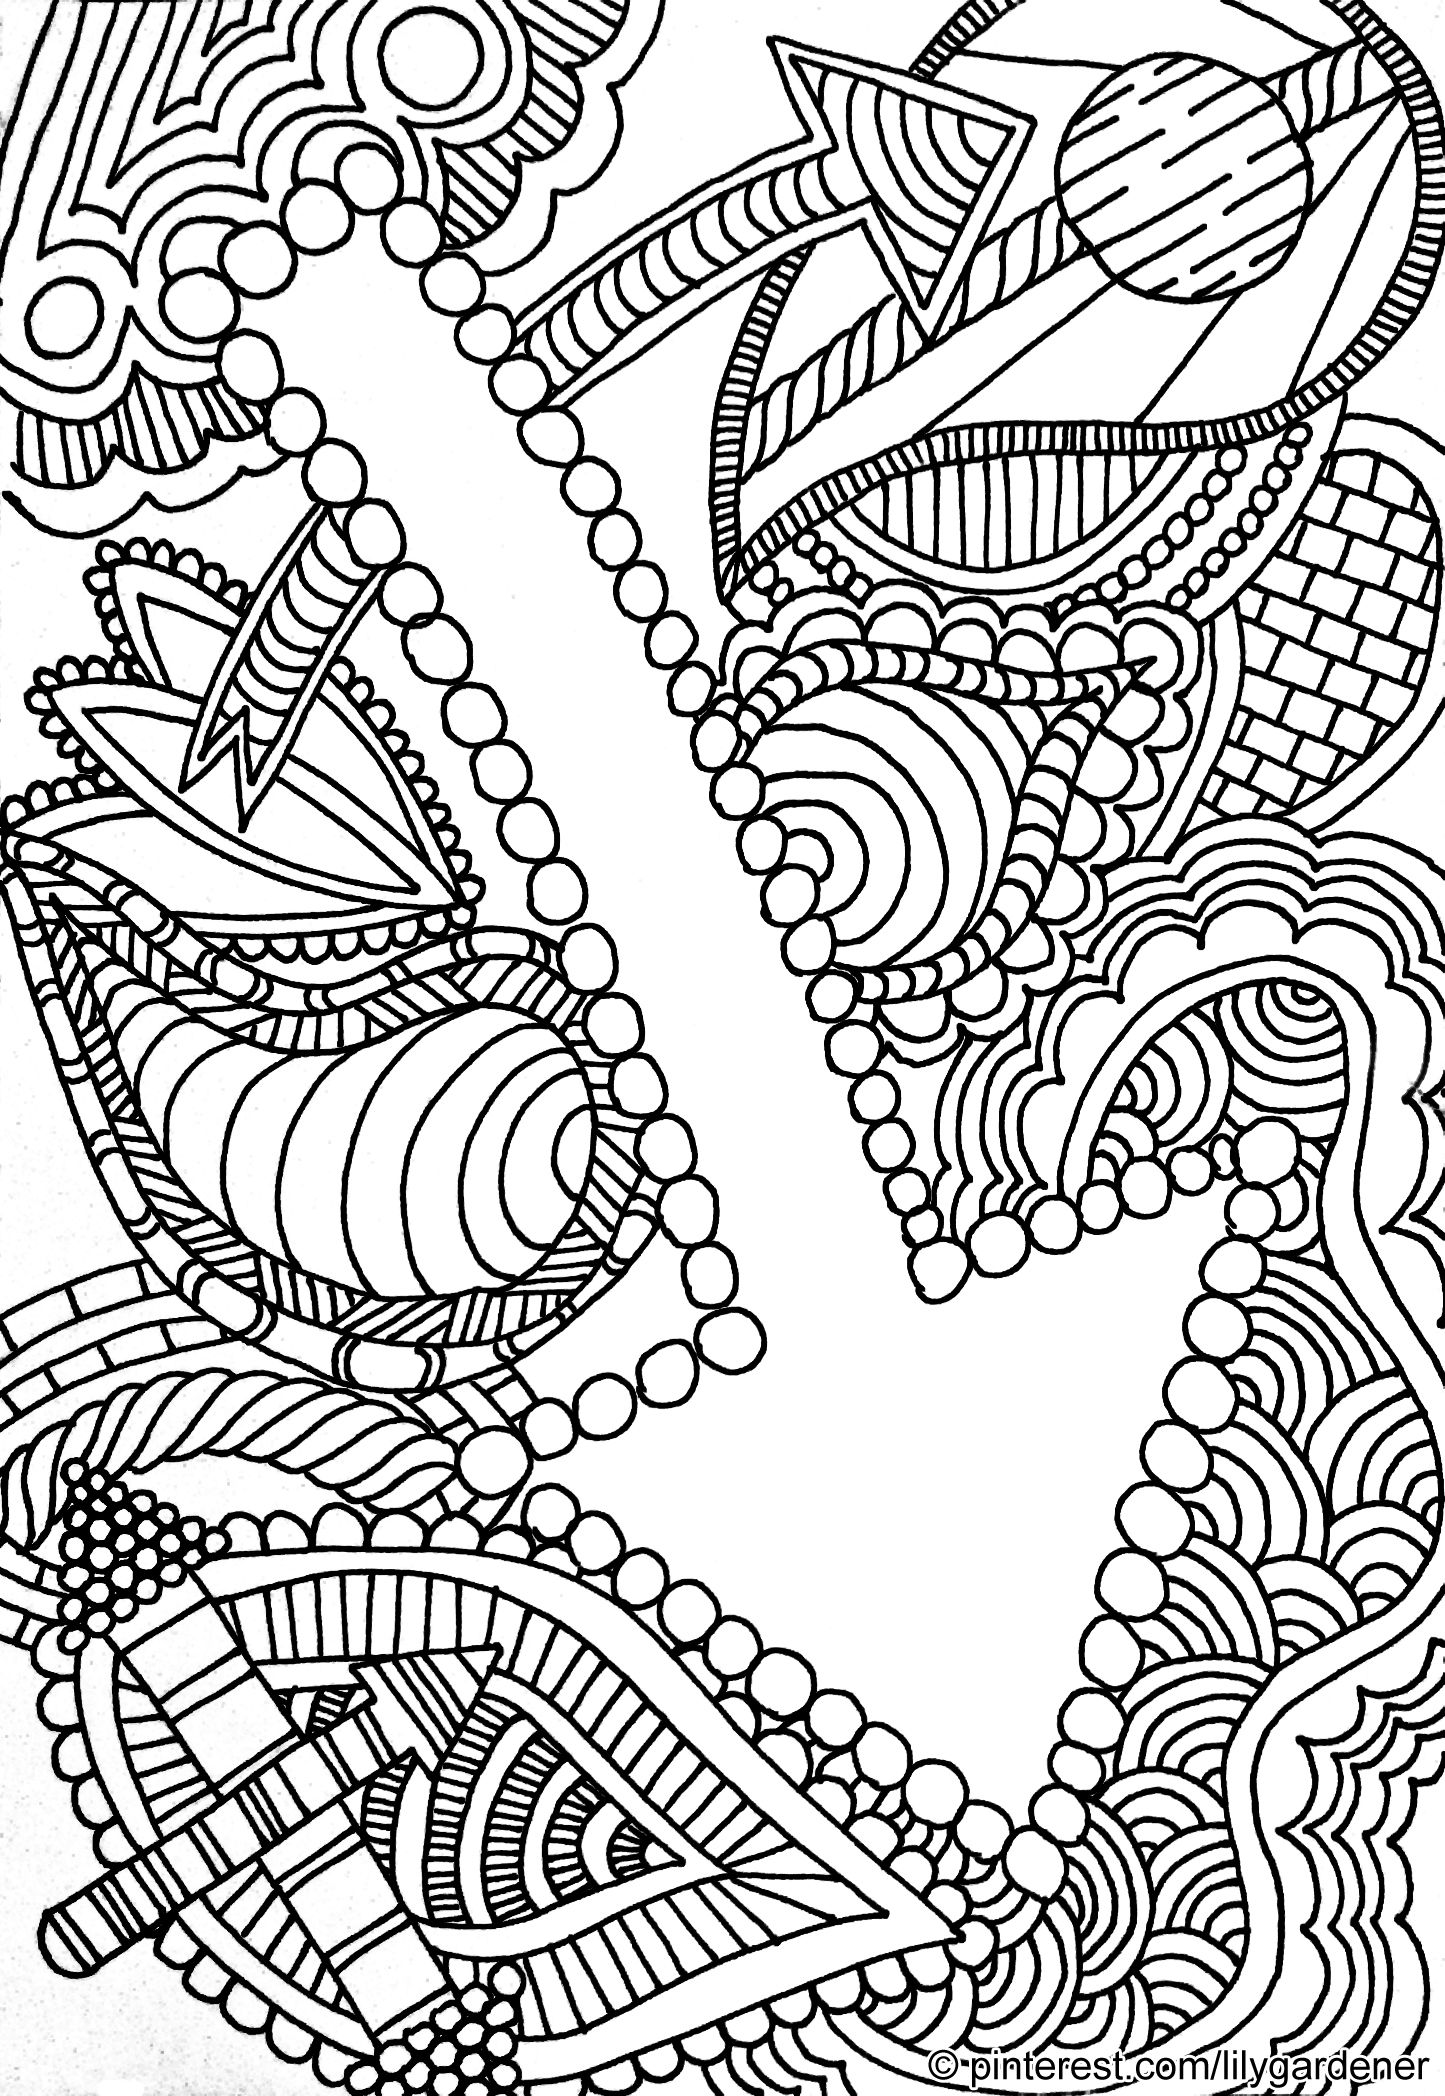 coloring prints for adults 10 free printable holiday adult coloring pages prints for coloring adults